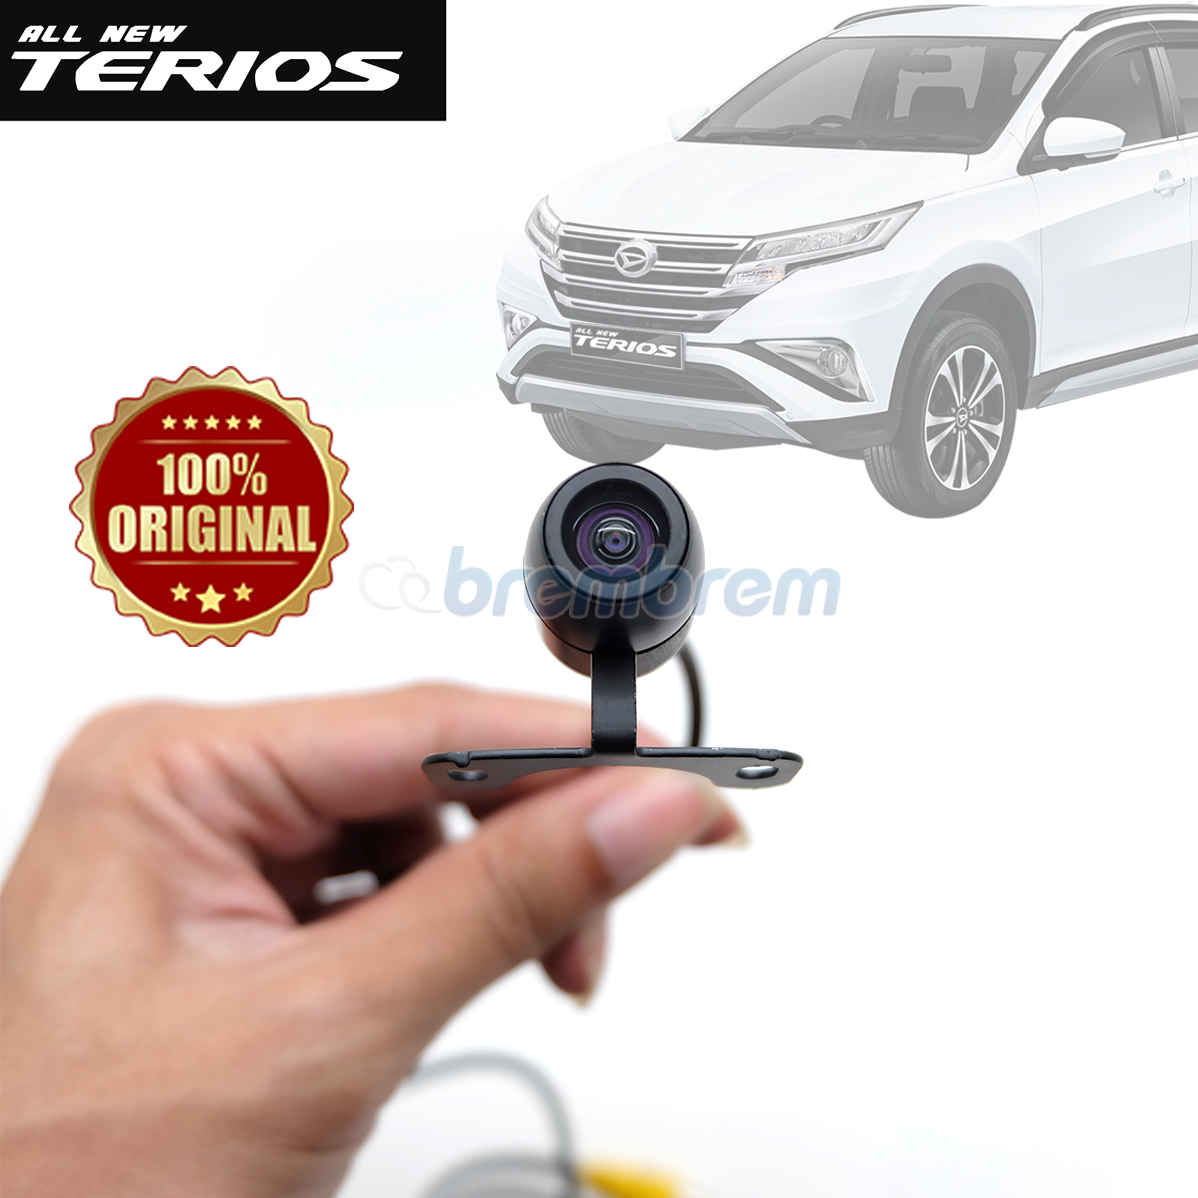 OTOPROJECT - KAMERA MUNDUR BULAT DAIHATSU ALL NEW TERIOS